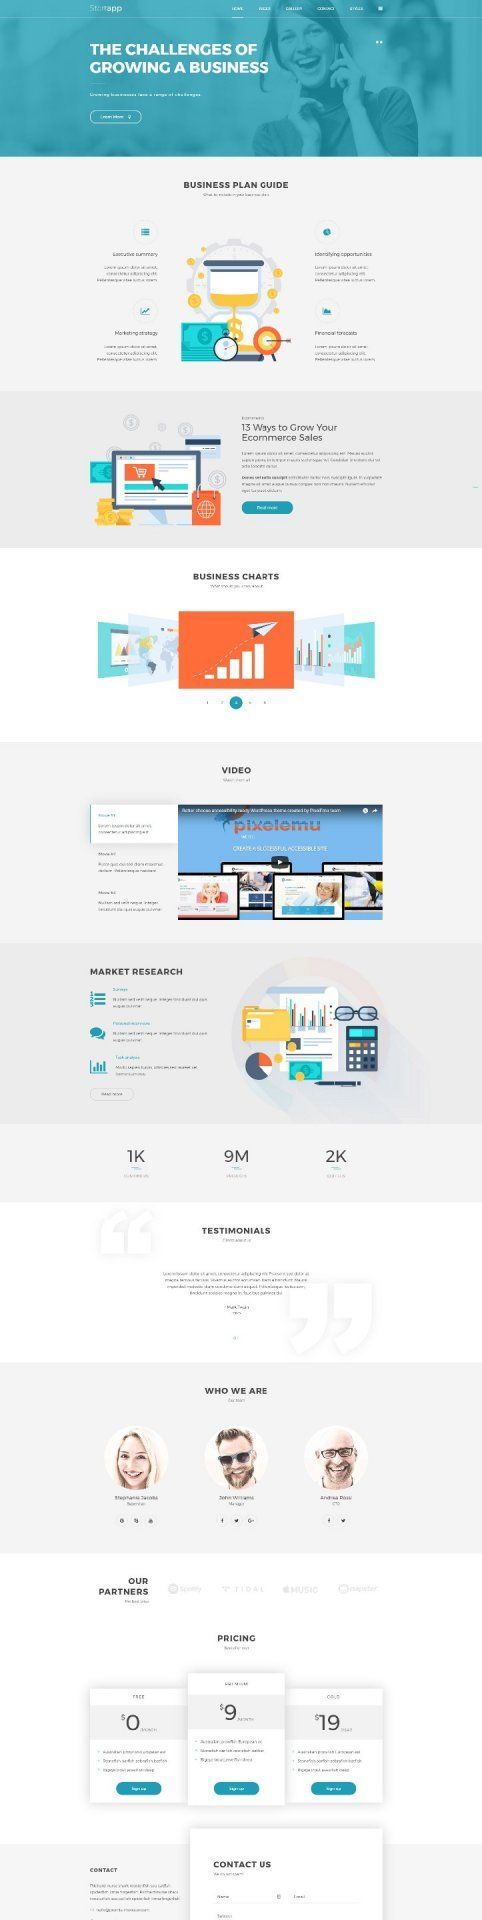 PE Business is an intuitive, smart business WordPress theme, suited for different kinds of business ventures from small businesses to biggest companies websites. #business #theme #WordPress #services #company #app #startup